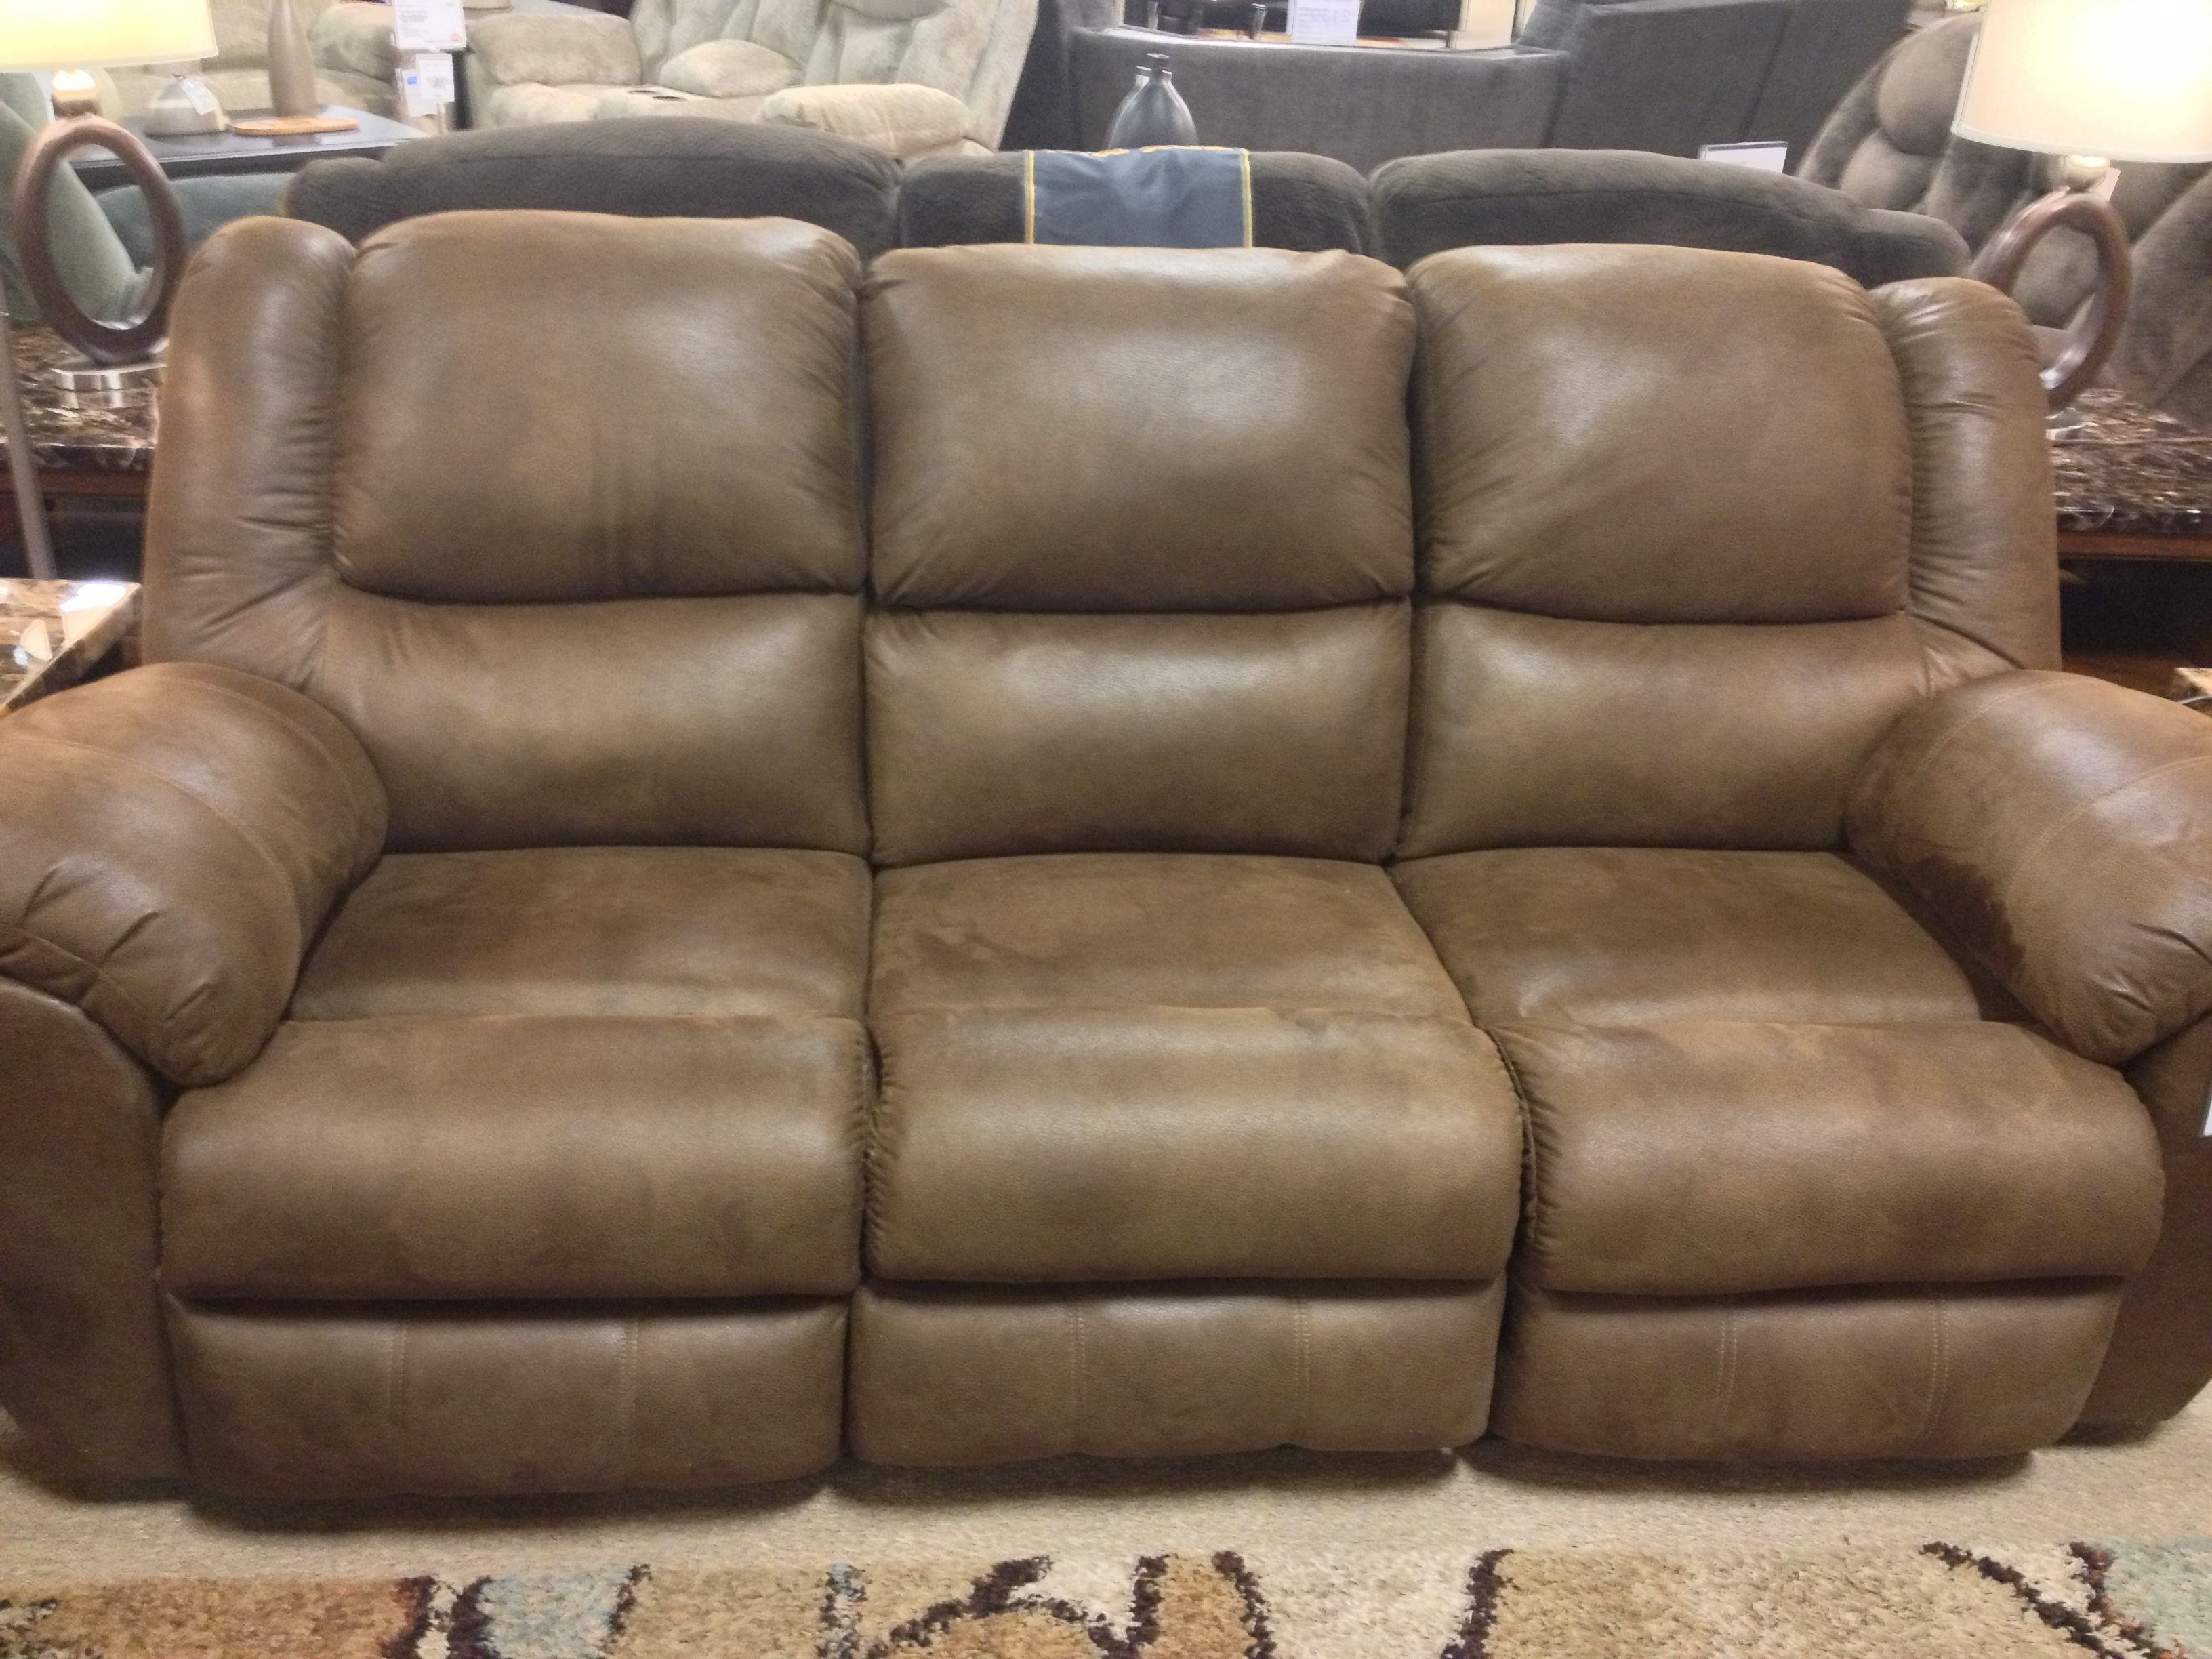 Quarterback Canyon #Sofa At Your Ashley #Furniture Homestore In #TriCities